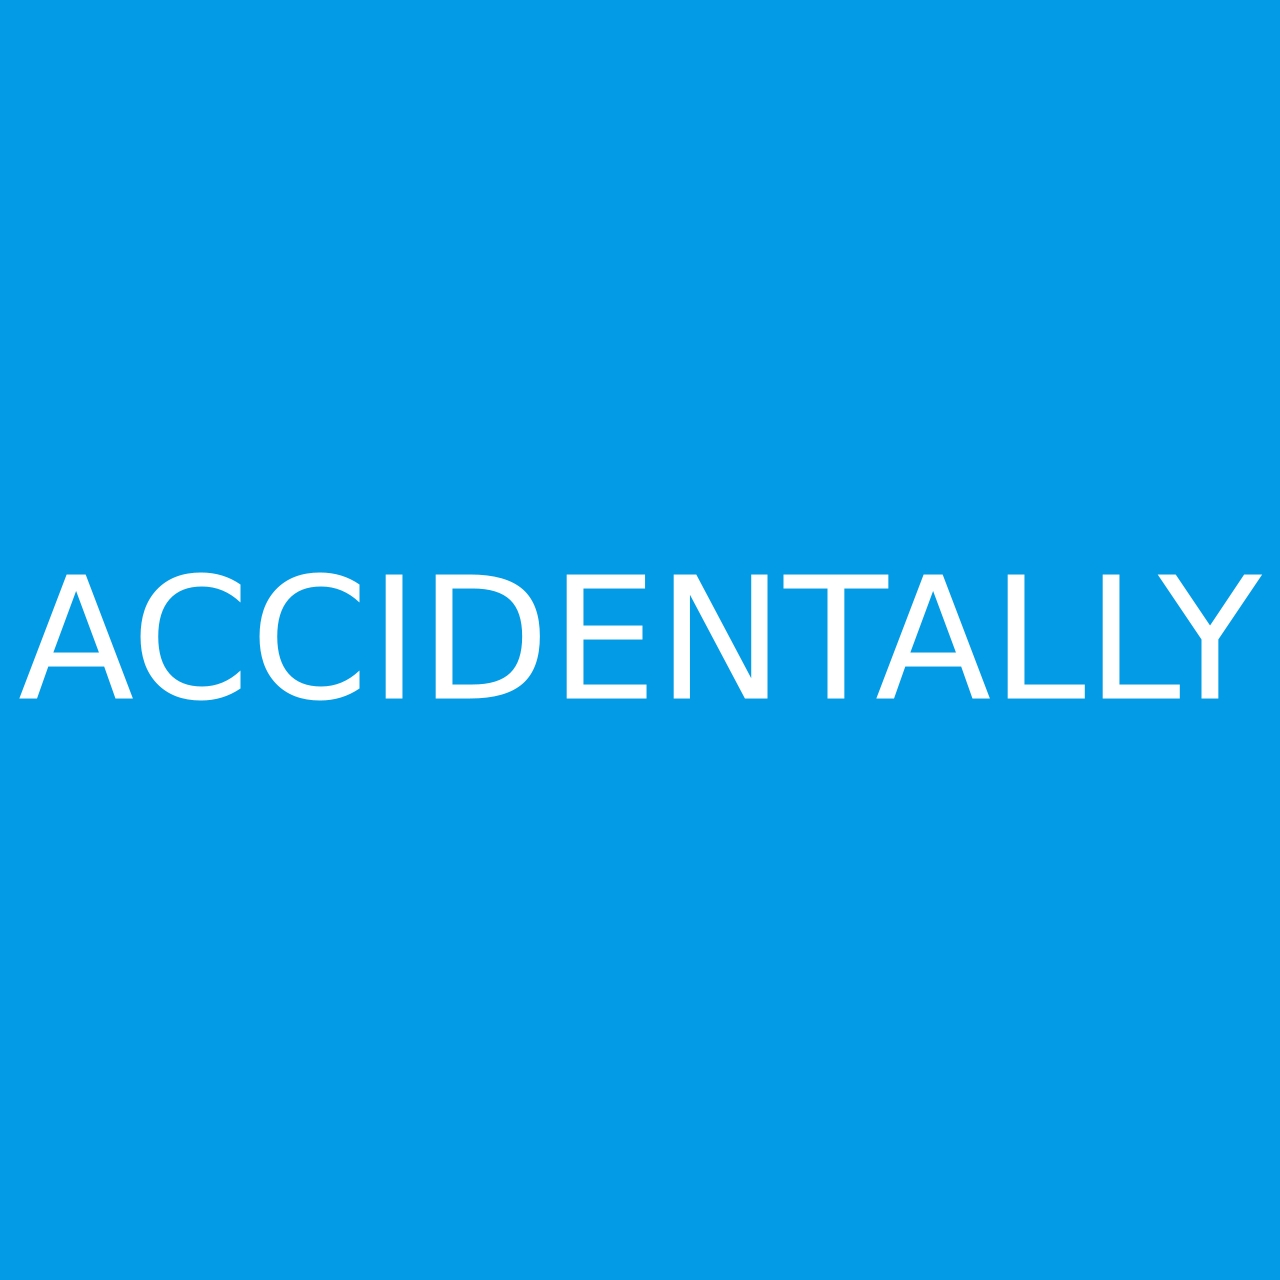 How to pronounce accidentally in English  JustPronounce